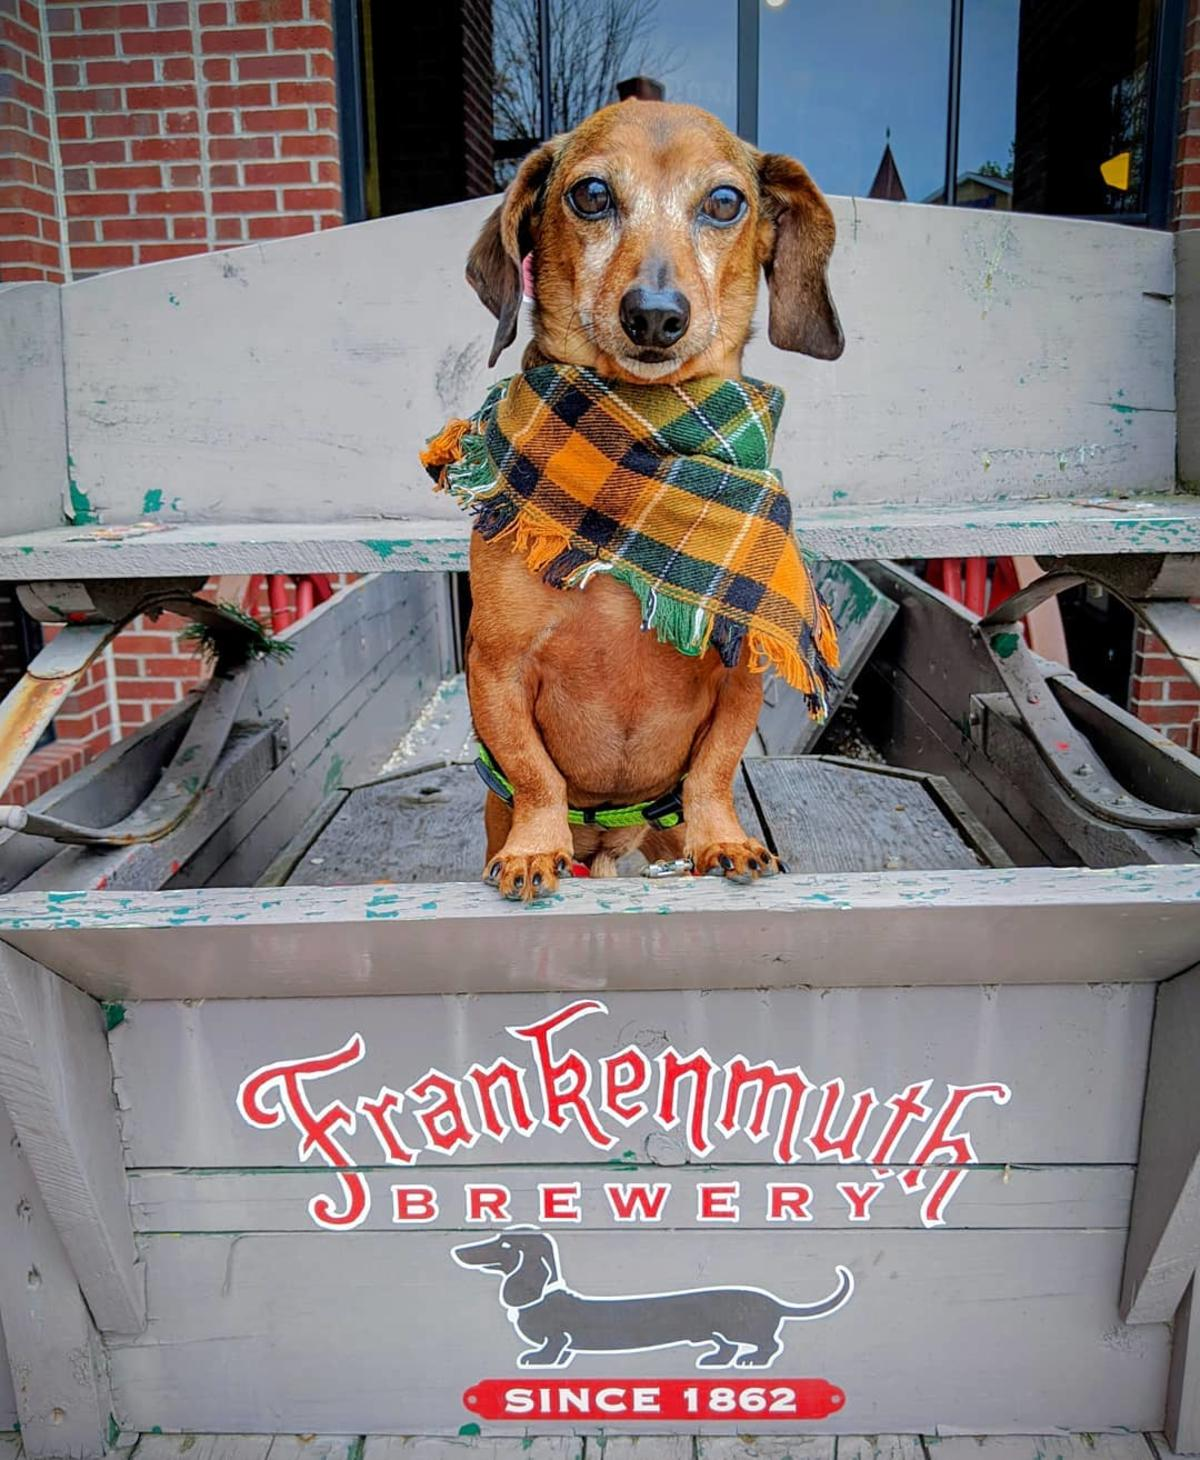 Dachshund sitting in the old Frankenmuth Brewery tractor in Frankenmuth